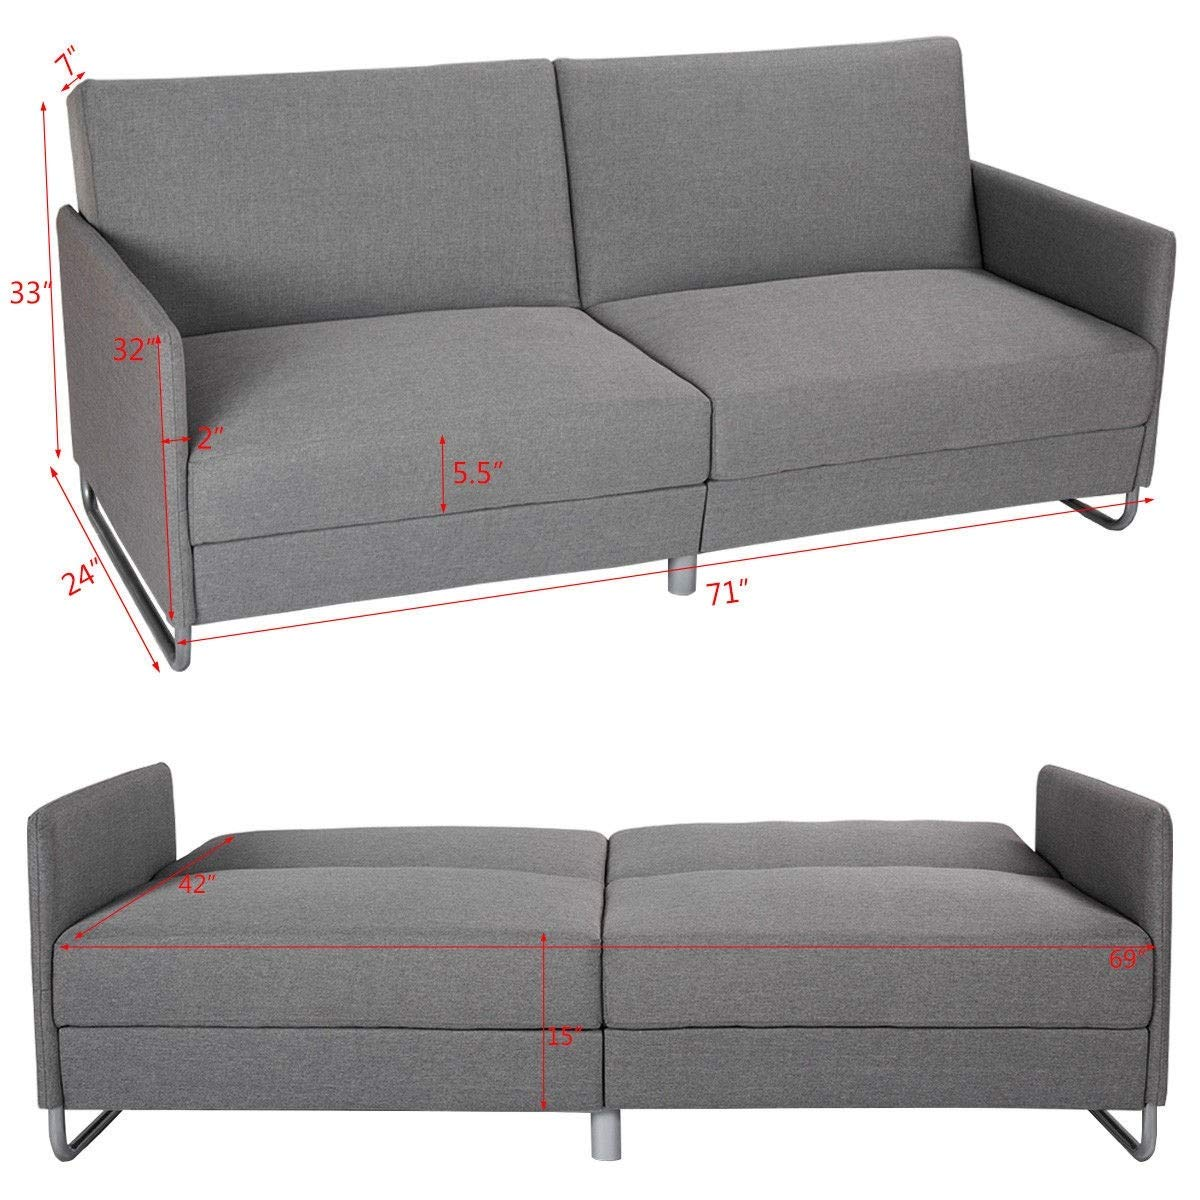 Amazon.com: Modern Futon Convertible Recliner Couch ...